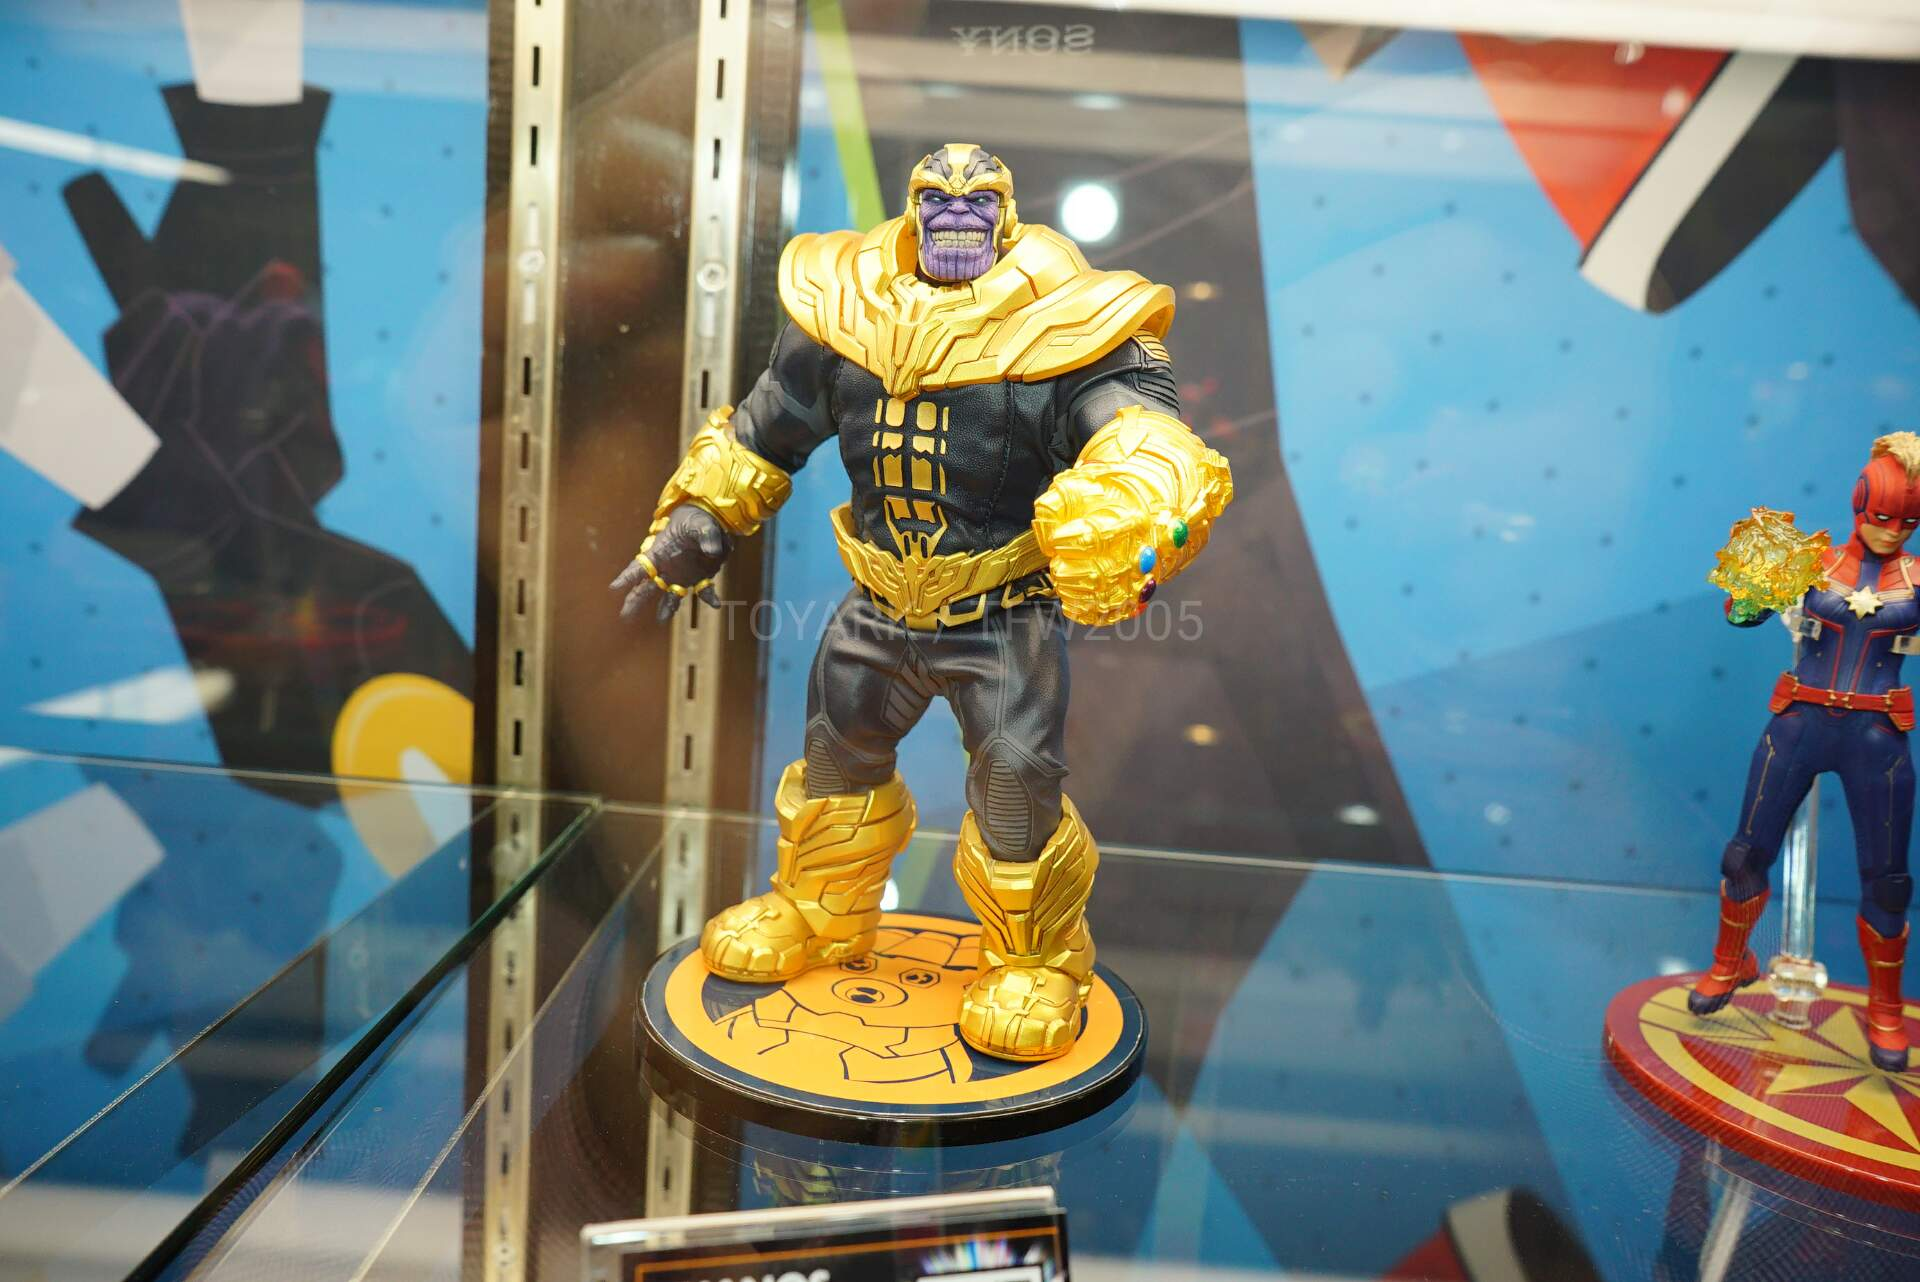 Toy-Fair-2020-Mezco-One12-030.jpg